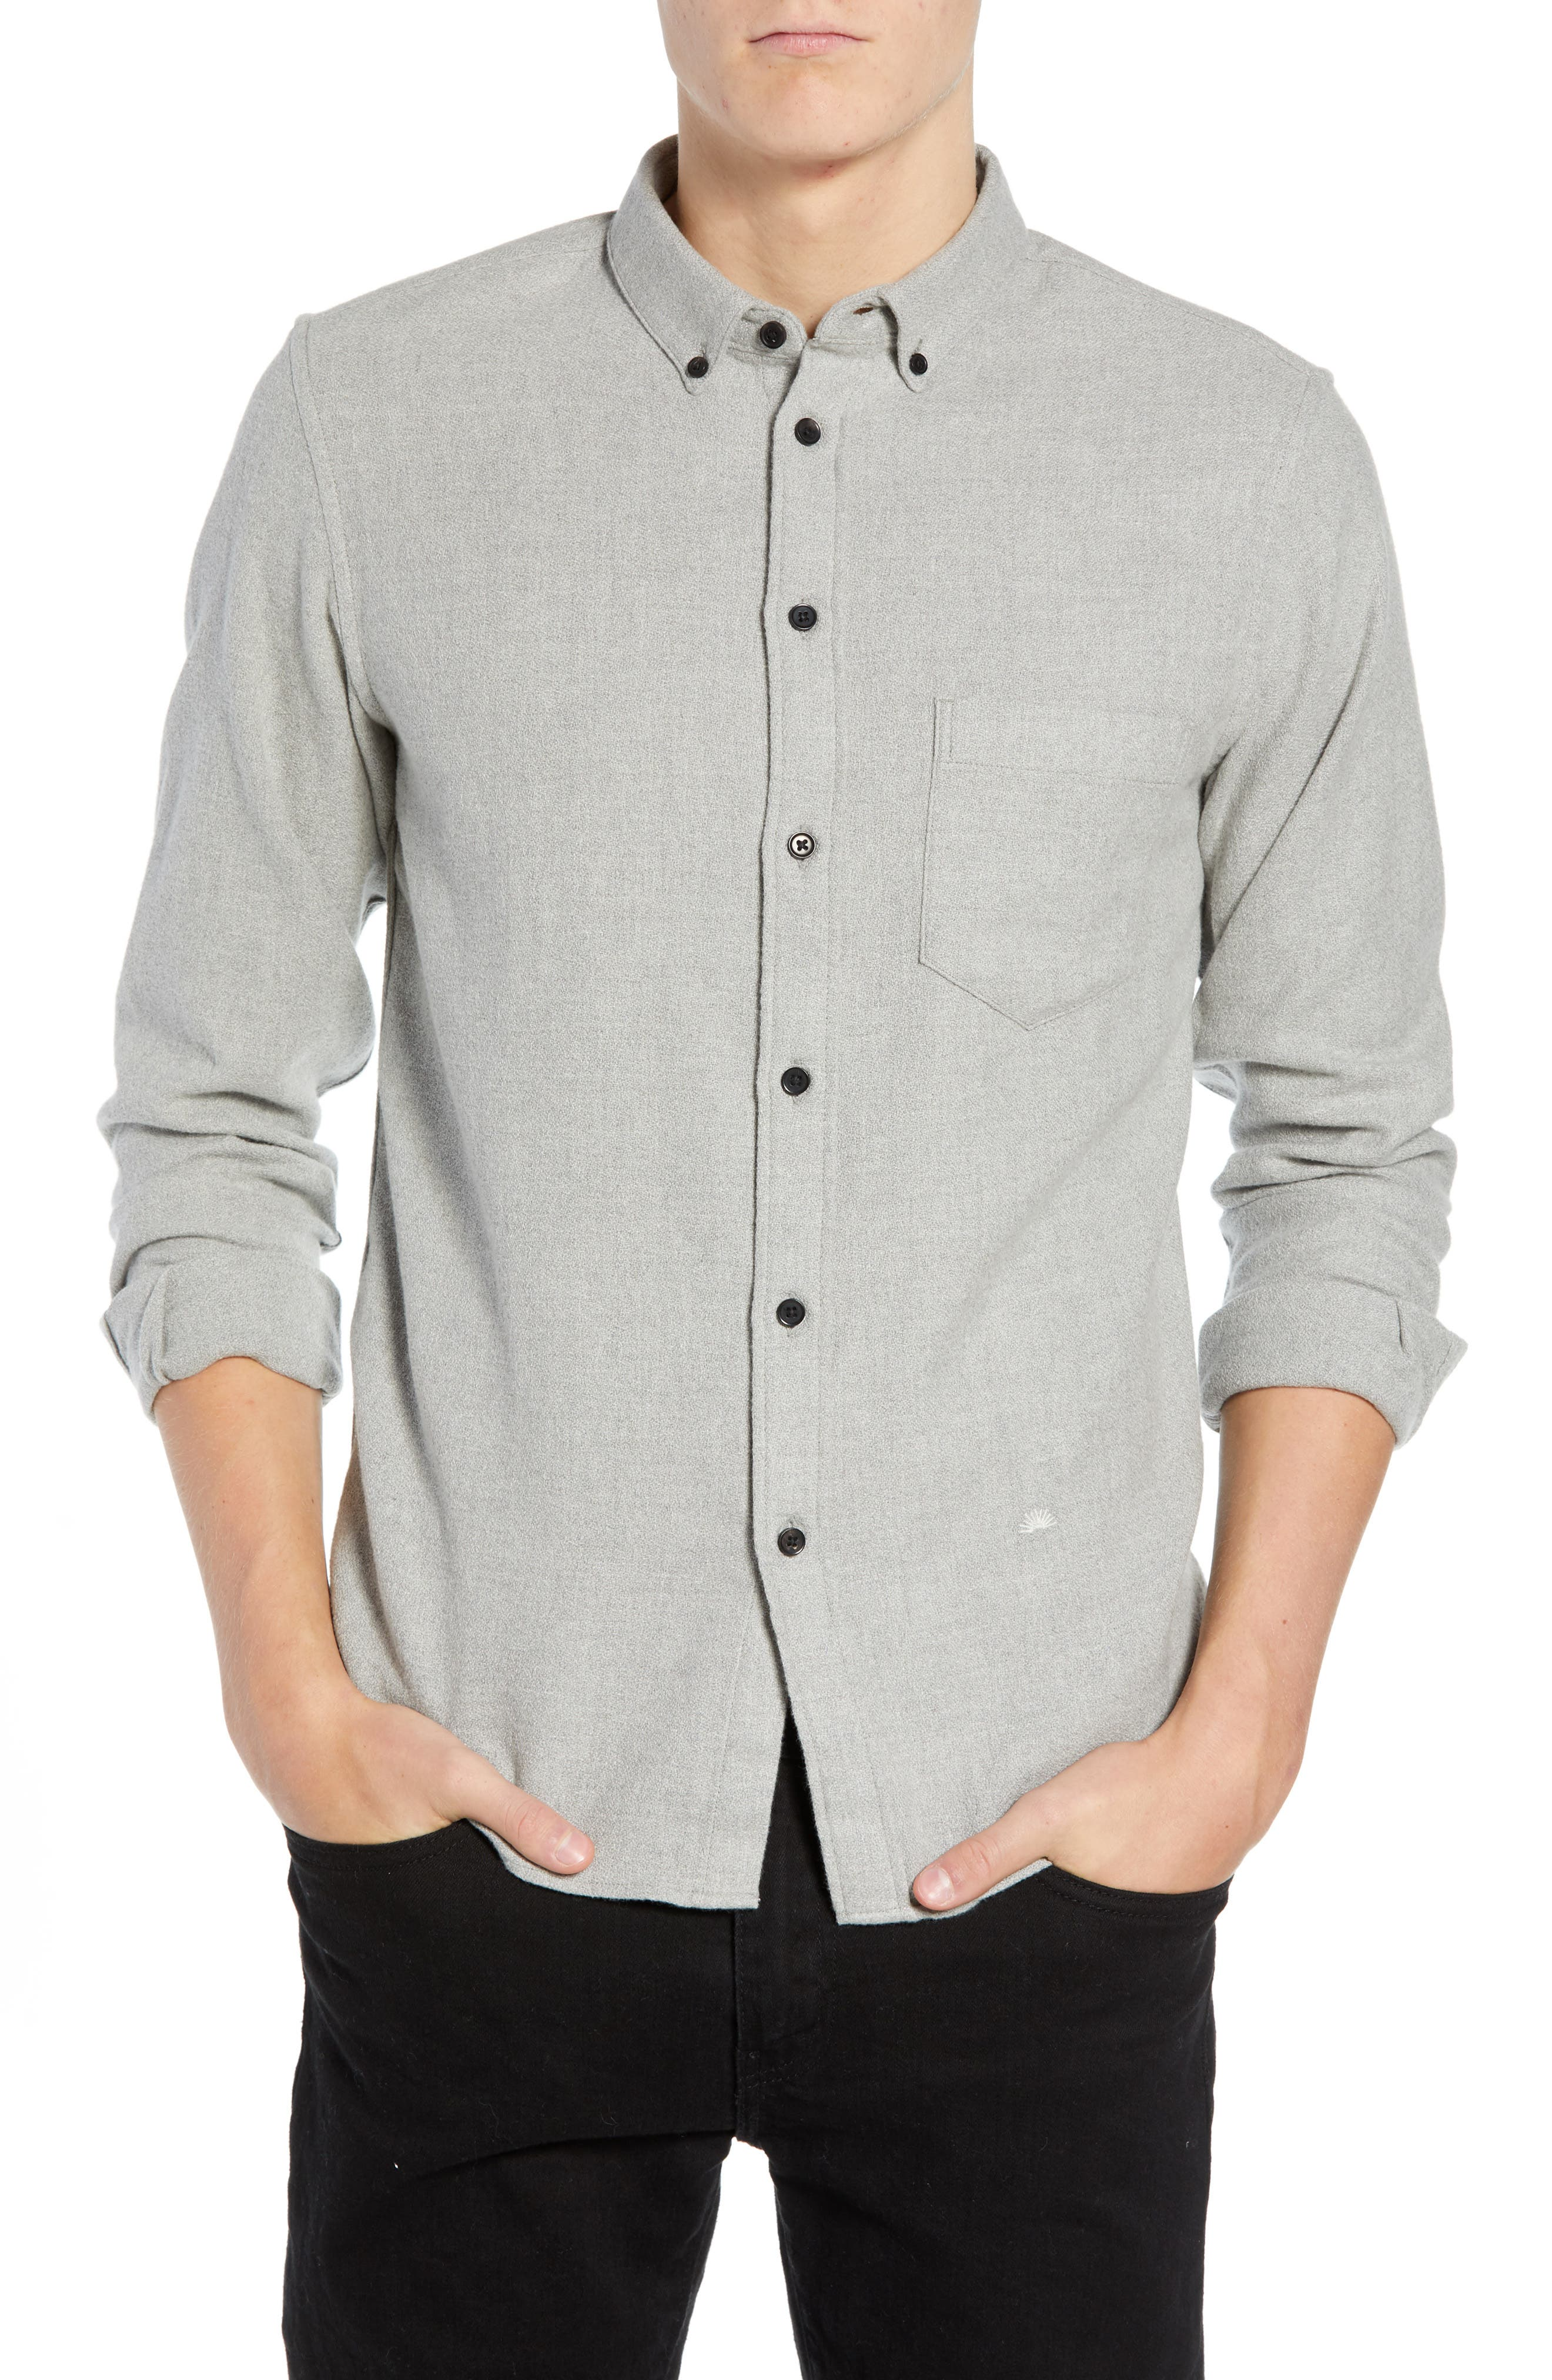 Levi's<sup>®</sup> Made & Crafted Regular Fit Mélange Shirt,                             Main thumbnail 1, color,                             020